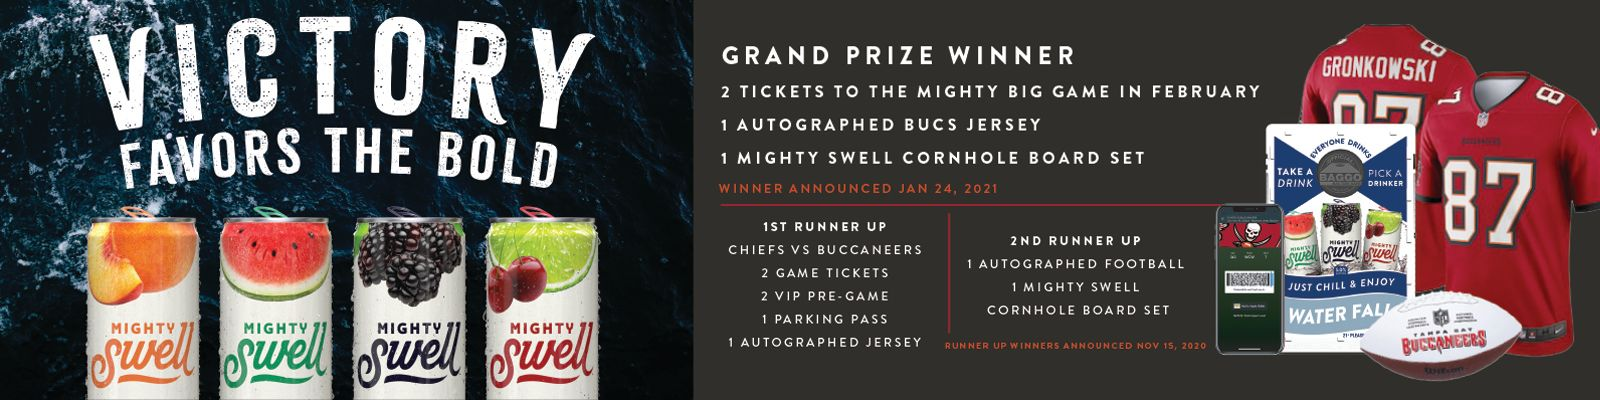 grand prize winner 2 tickets to the mighty big game in february 1 autographed bucs jersey 1 mighty swell cornhole board set winner announced jan 21,2021  view rules for more info